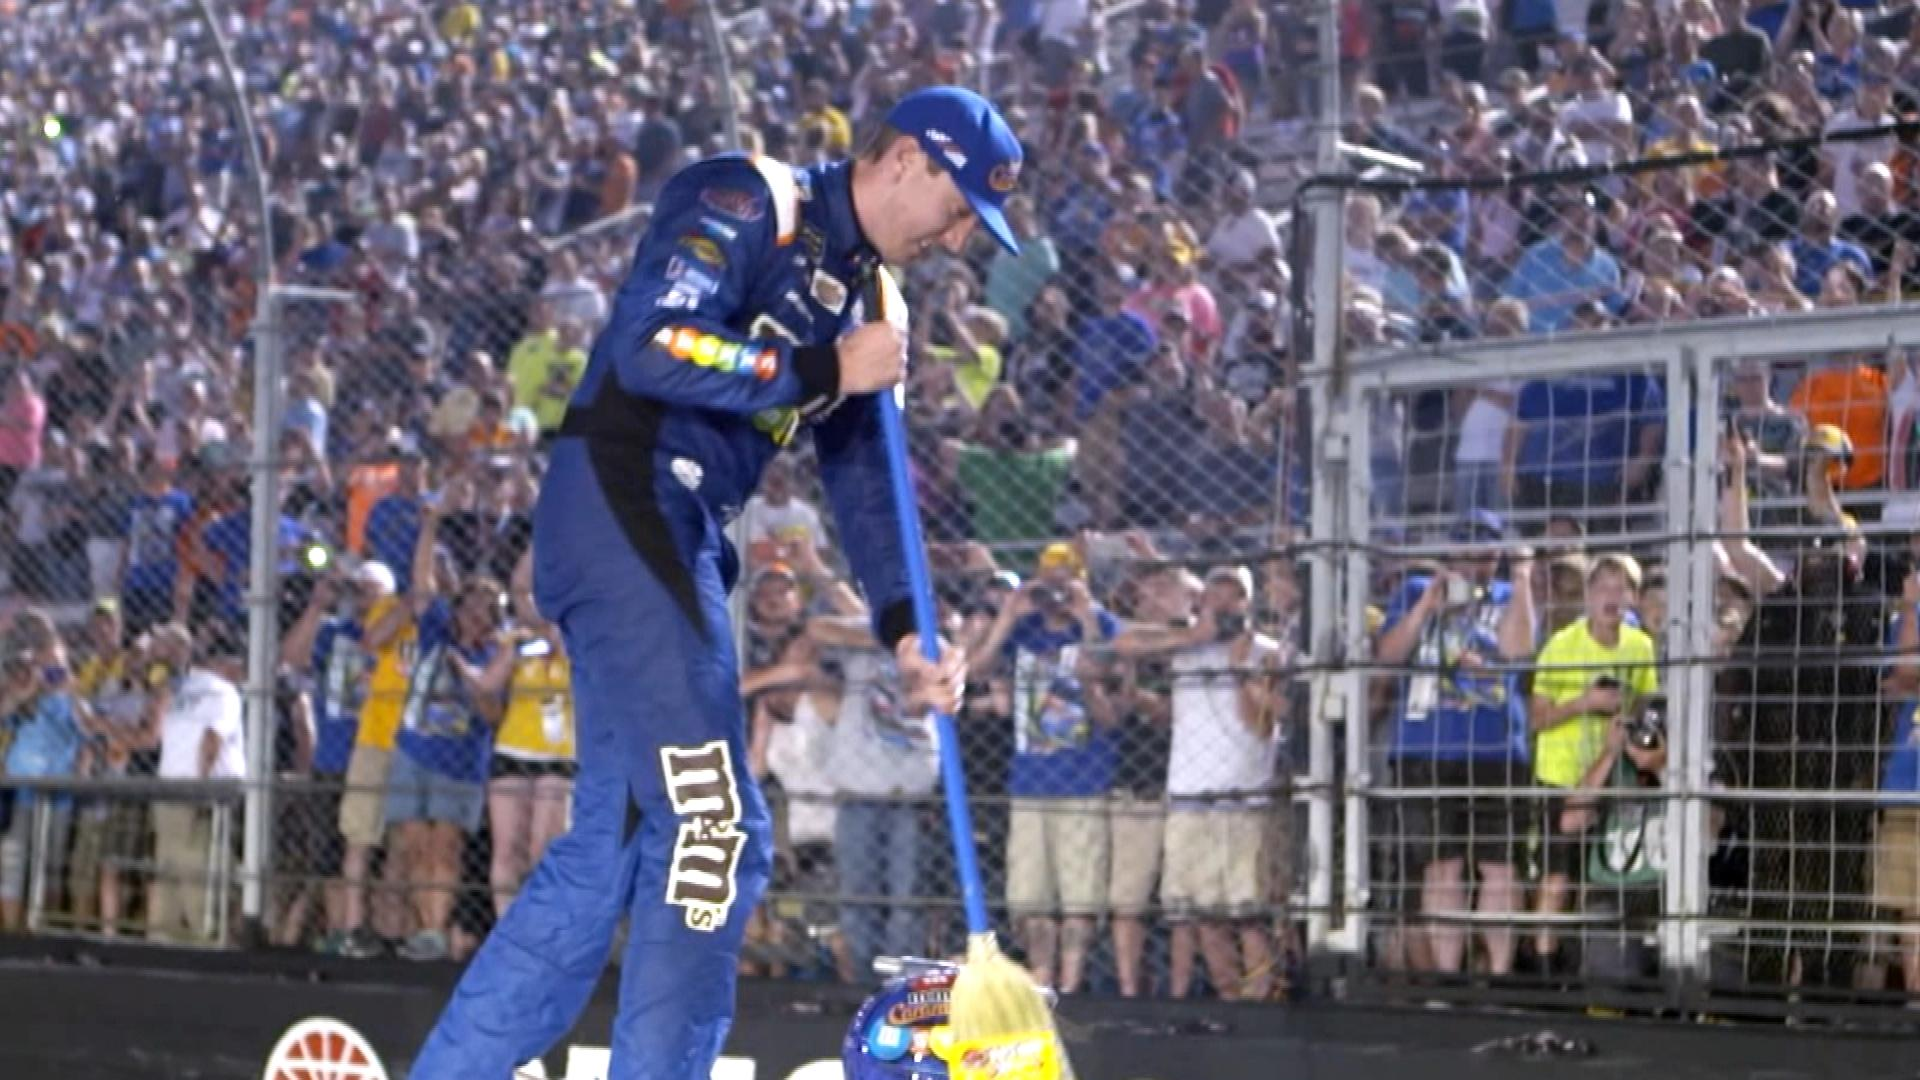 Breaking down Kyle Busch's place in NASCAR history after 200th win